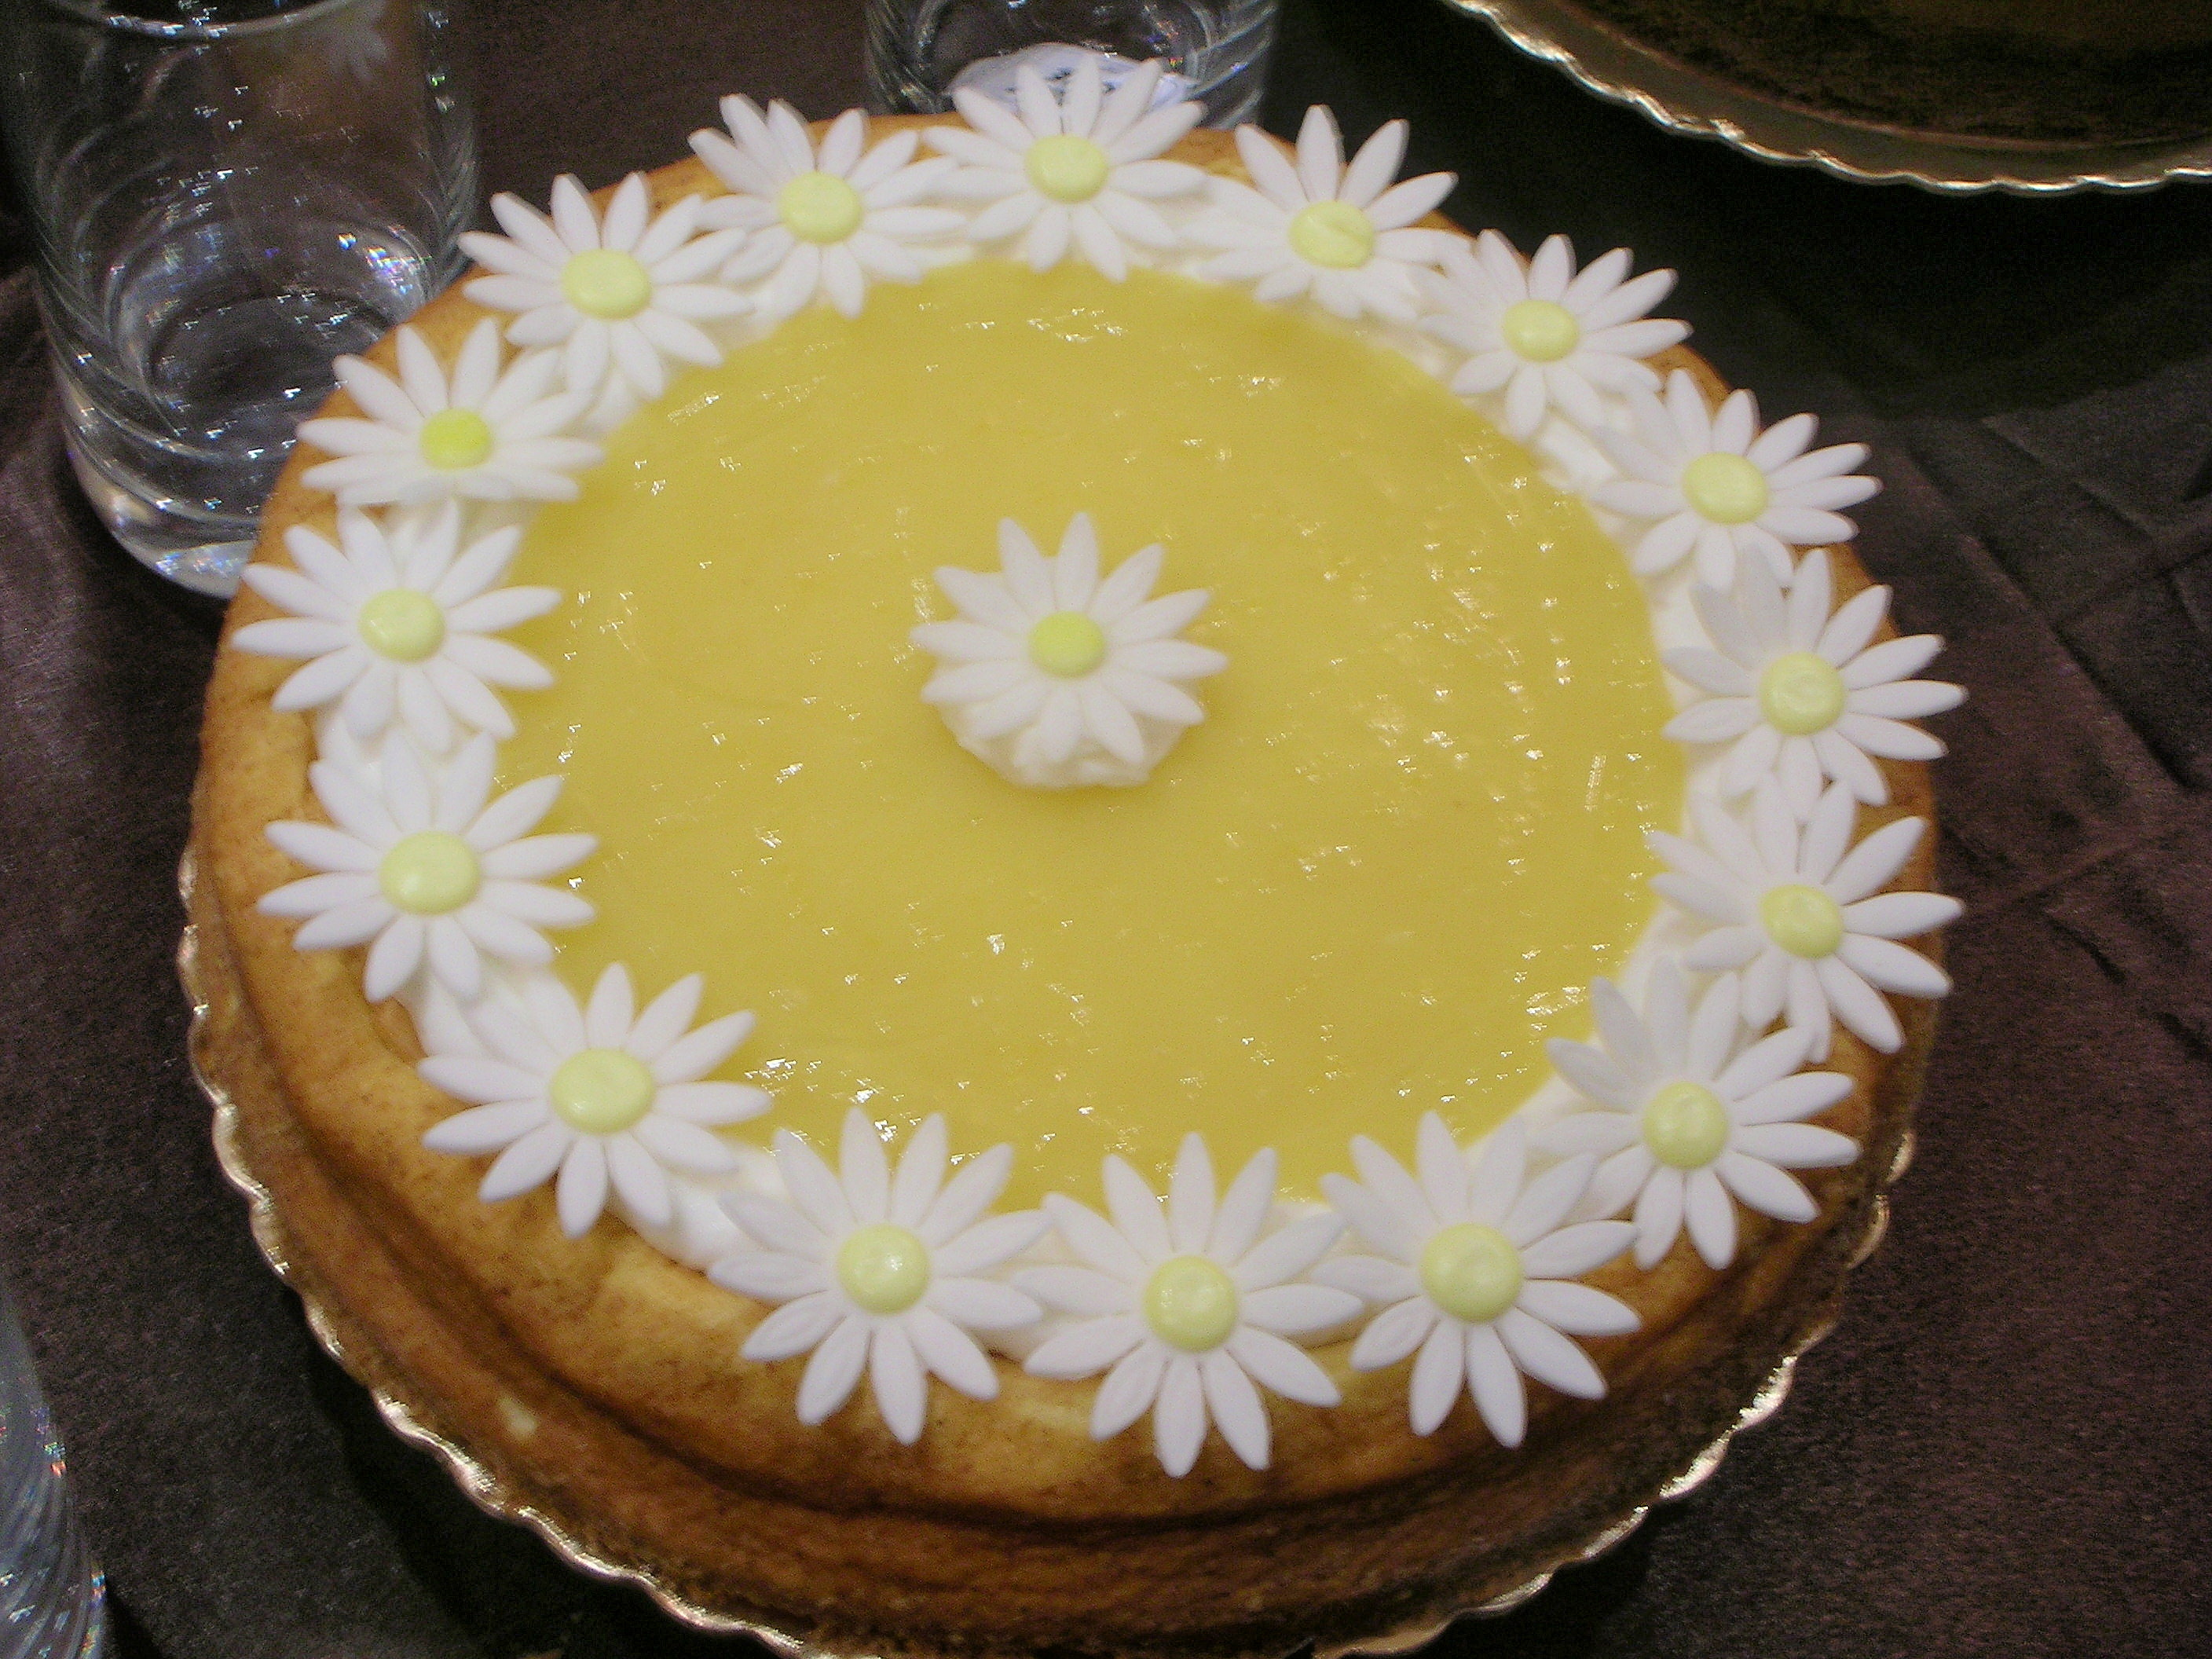 Cheesecake with Lemon Curd, decorated with fondant sunflowers